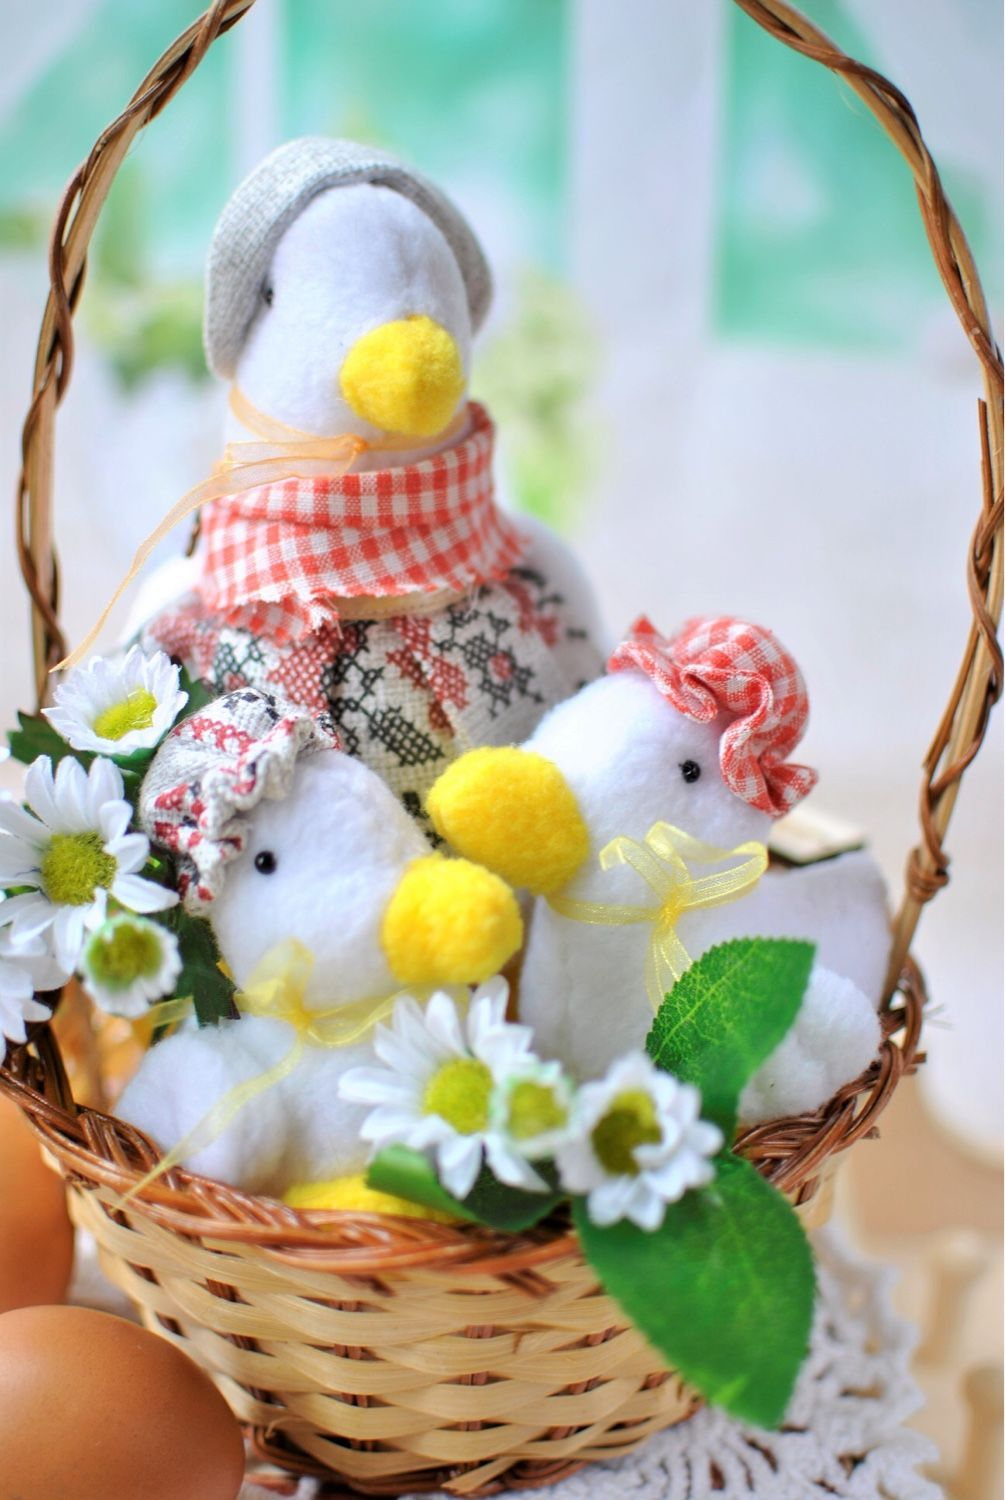 Mother duck with babies composition shop online on livemaster easter gifts handmade mother duck with babies composition nashasasha my livemaster negle Image collections